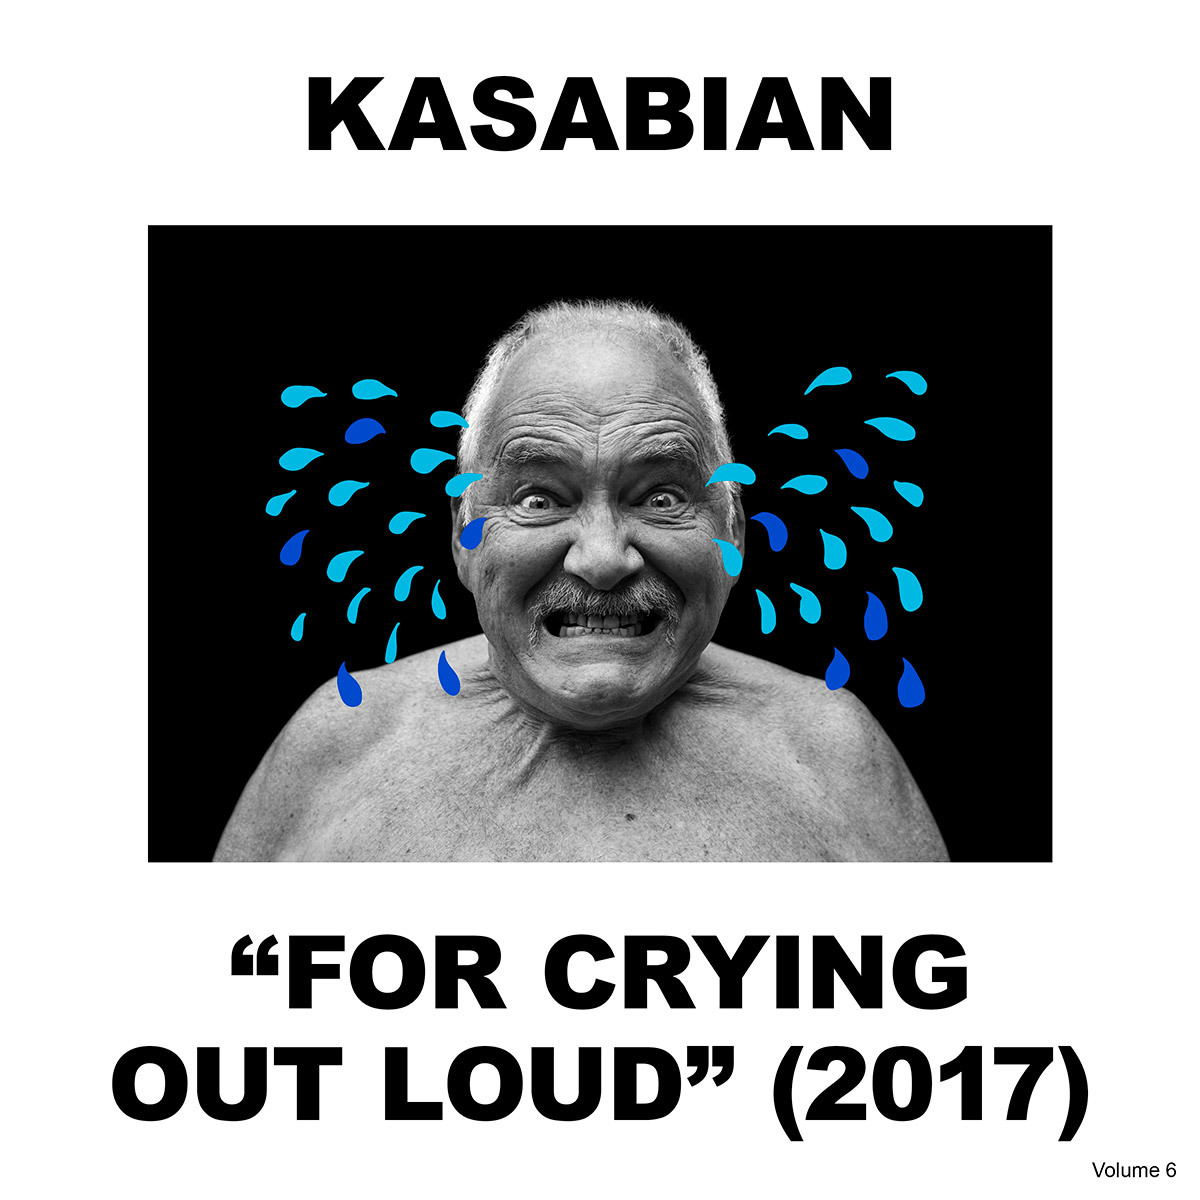 For Crying Out Loud by Kasabian image